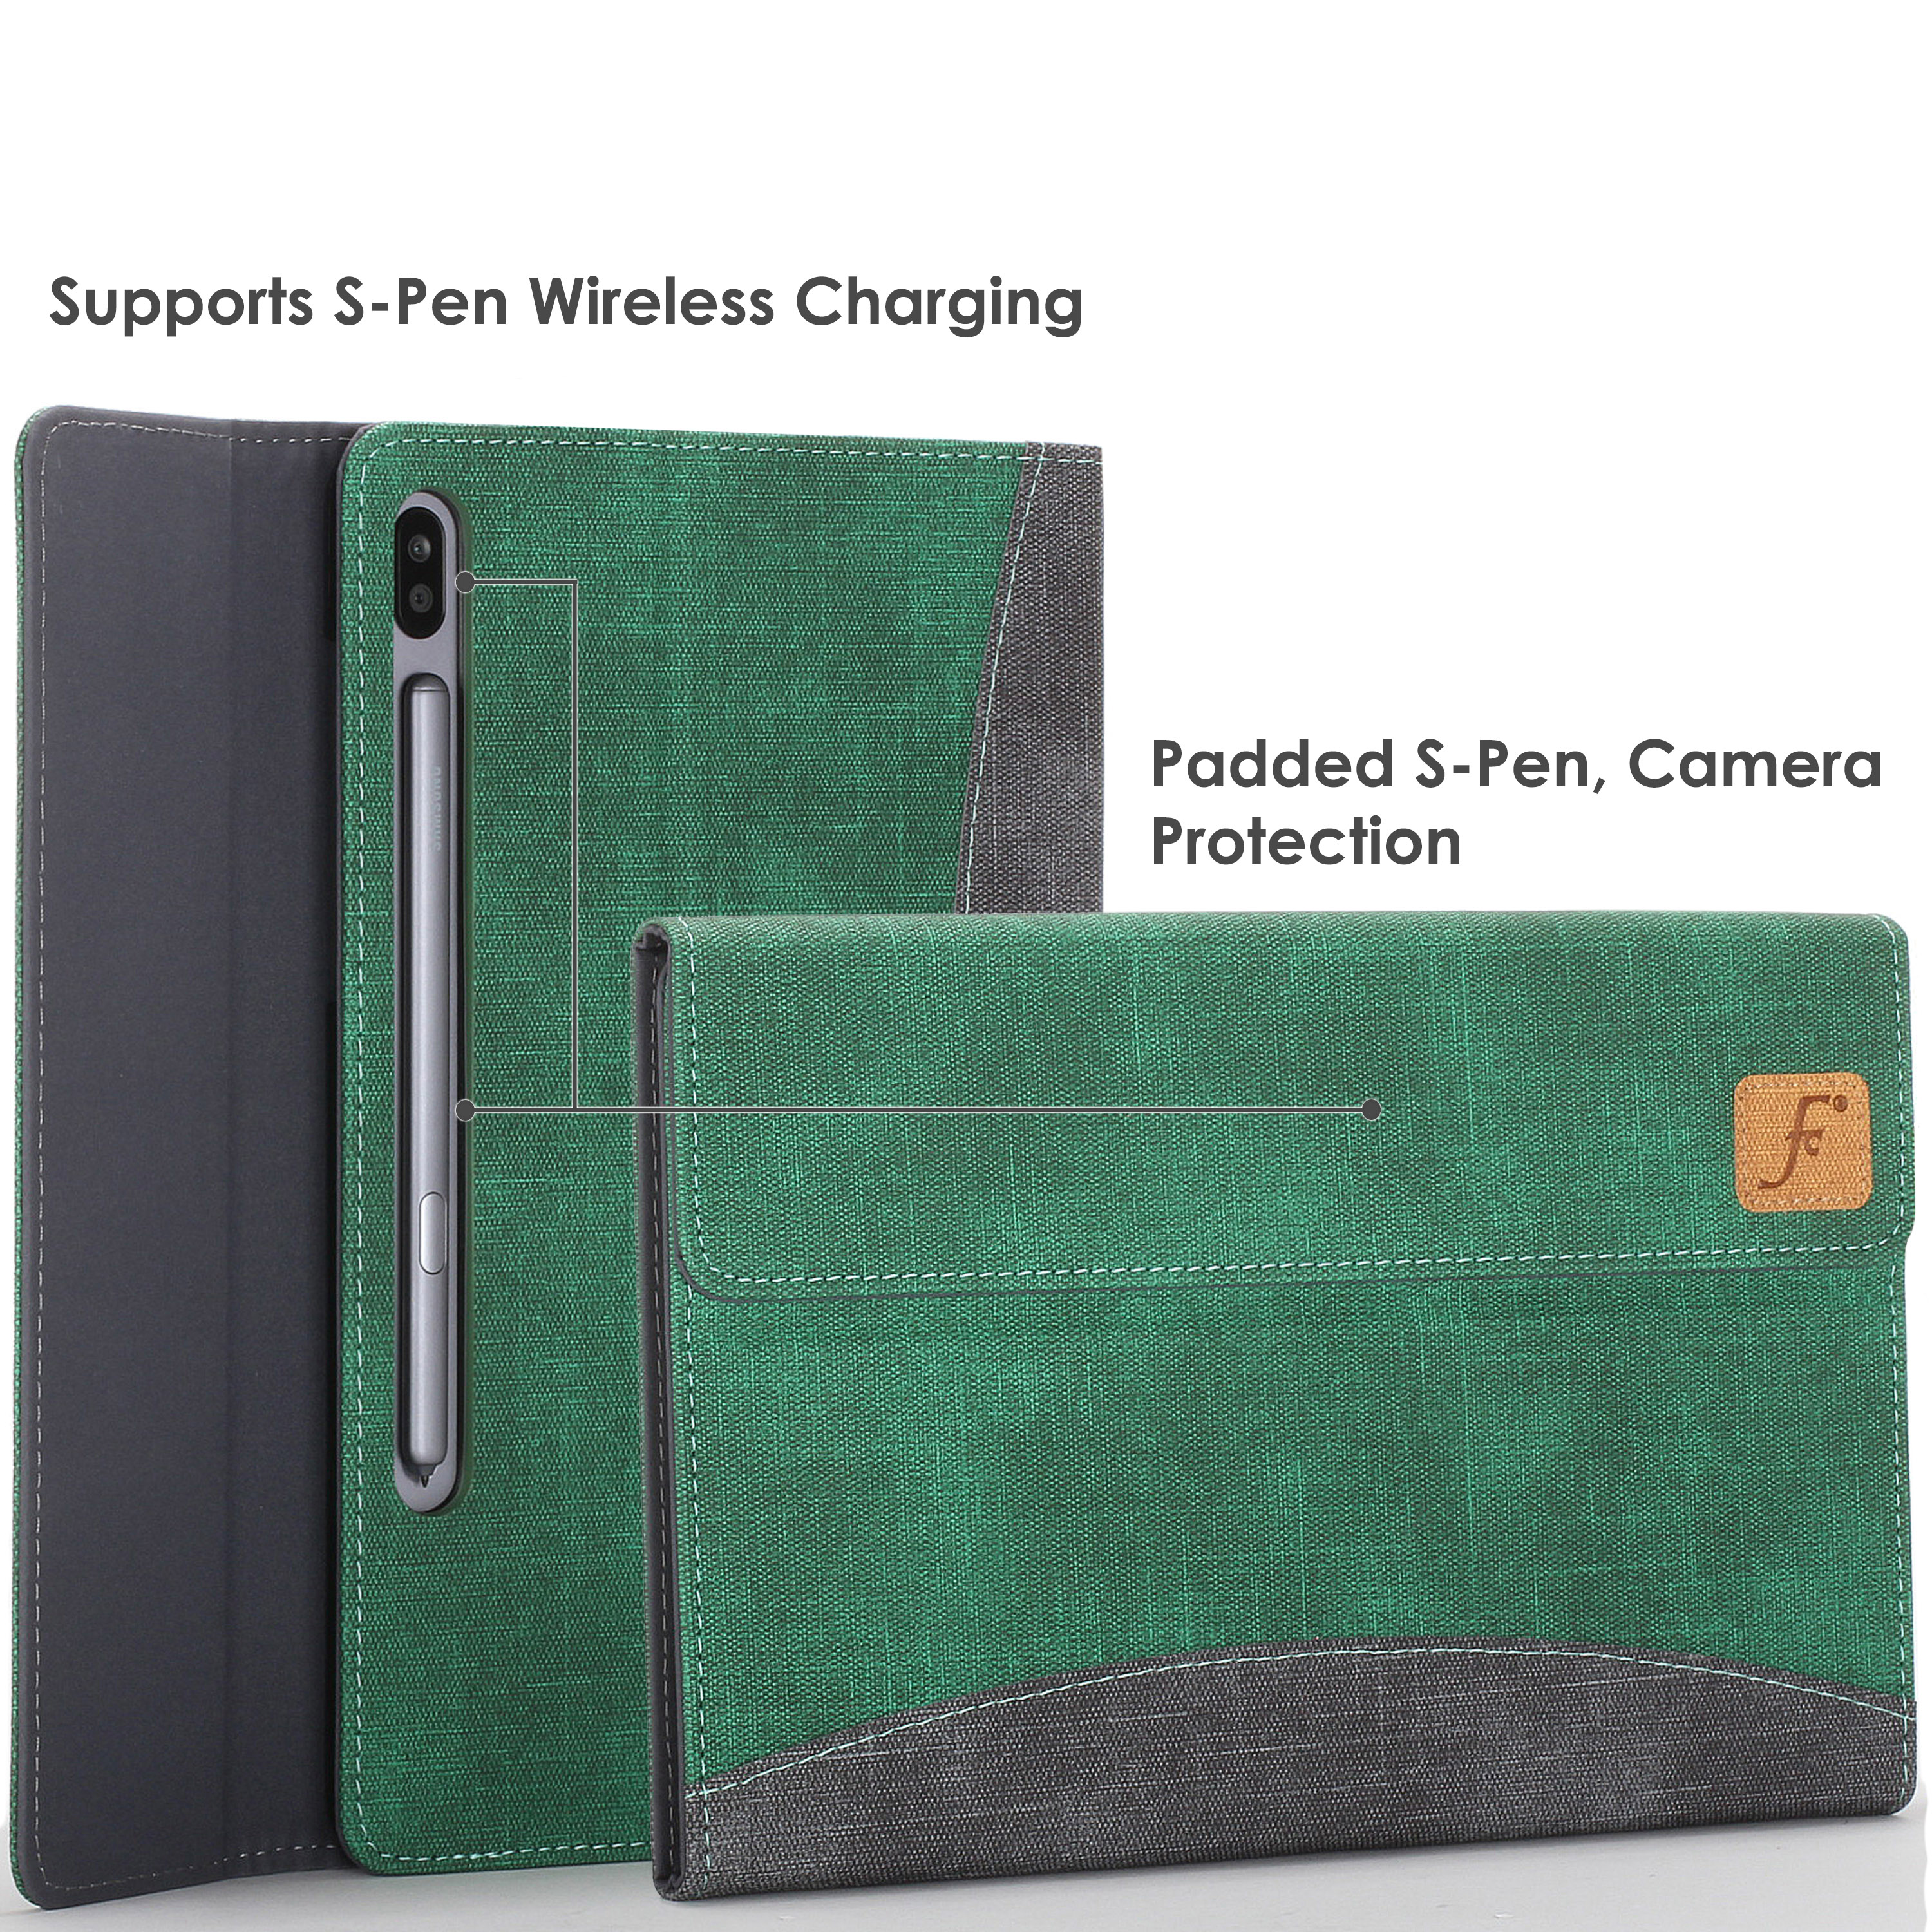 Samsung-Galaxy-Tab-S6-10-5-Case-Cover-Stand-with-Document-Pocket-amp-Sleep-Wake thumbnail 12